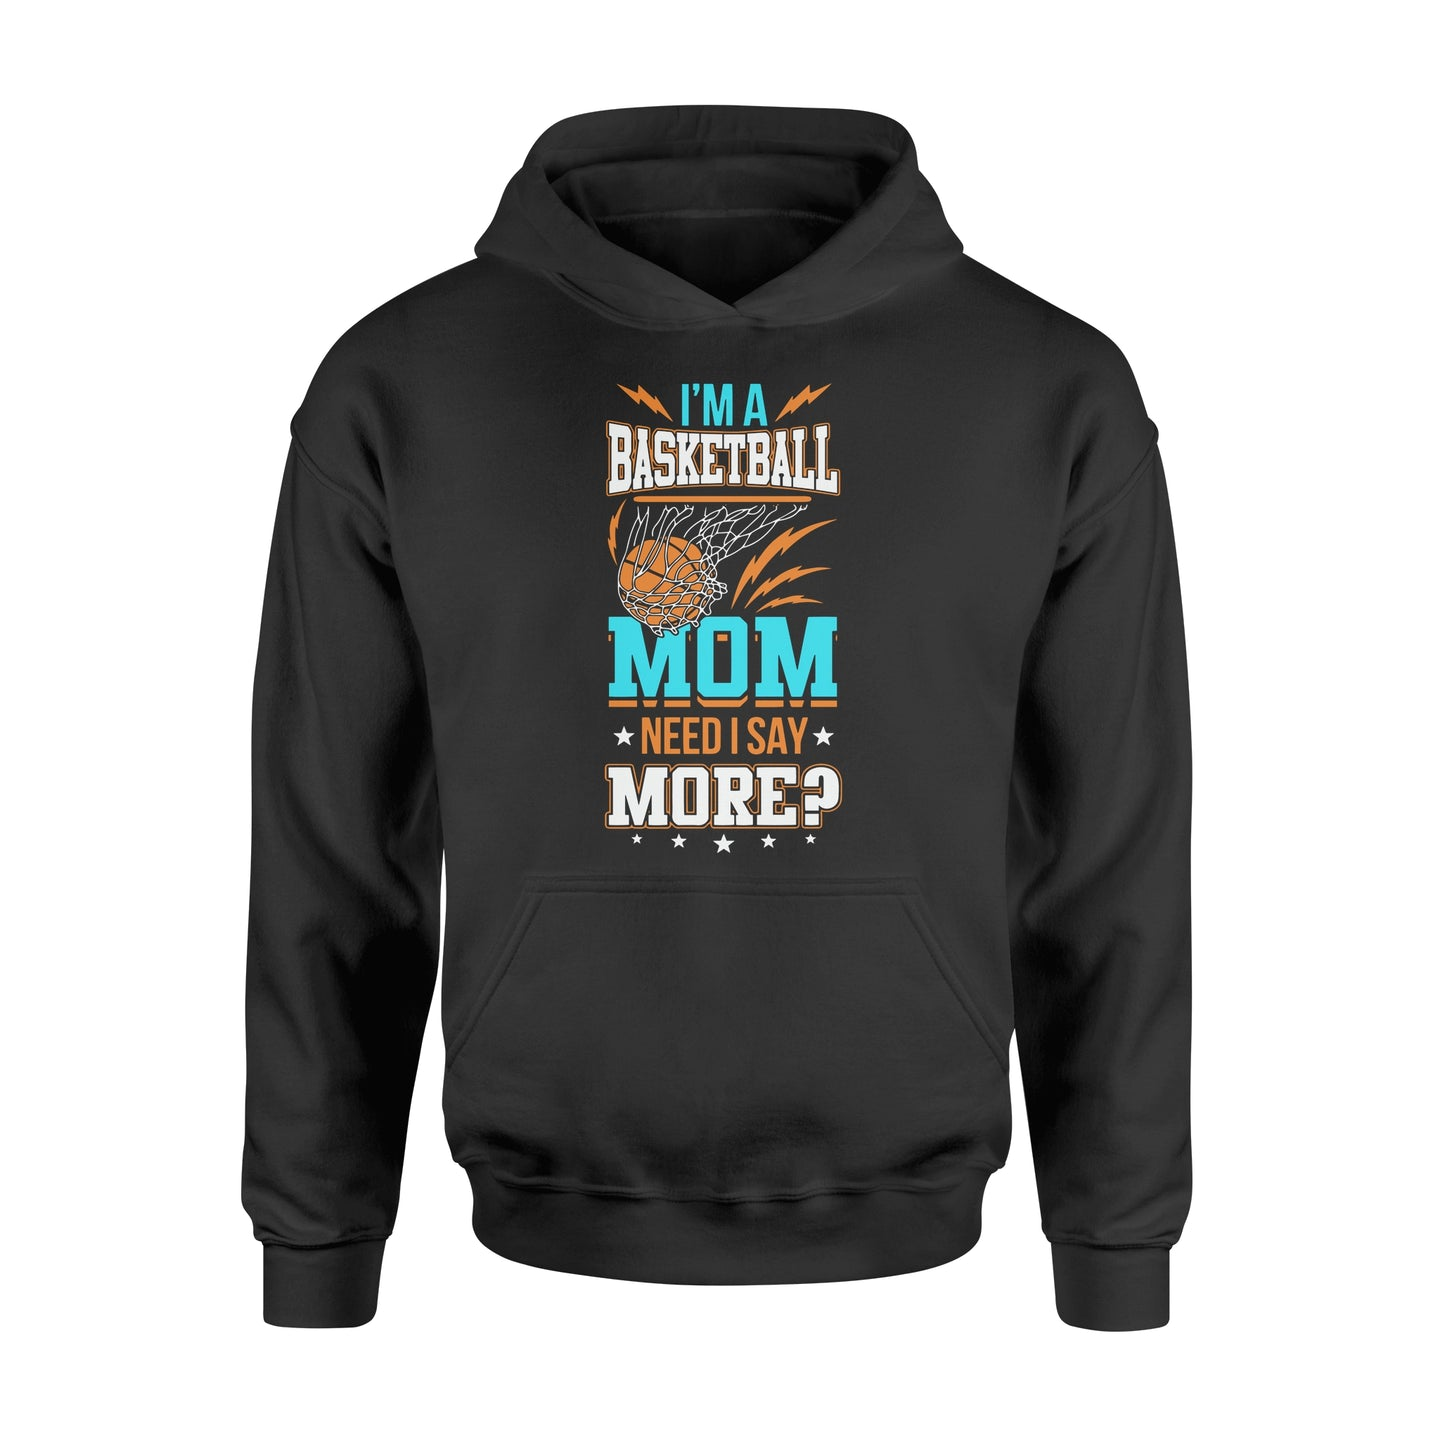 I'm A Basketball Mom Need I Say More - Standard Hoodie Apparel S / Black